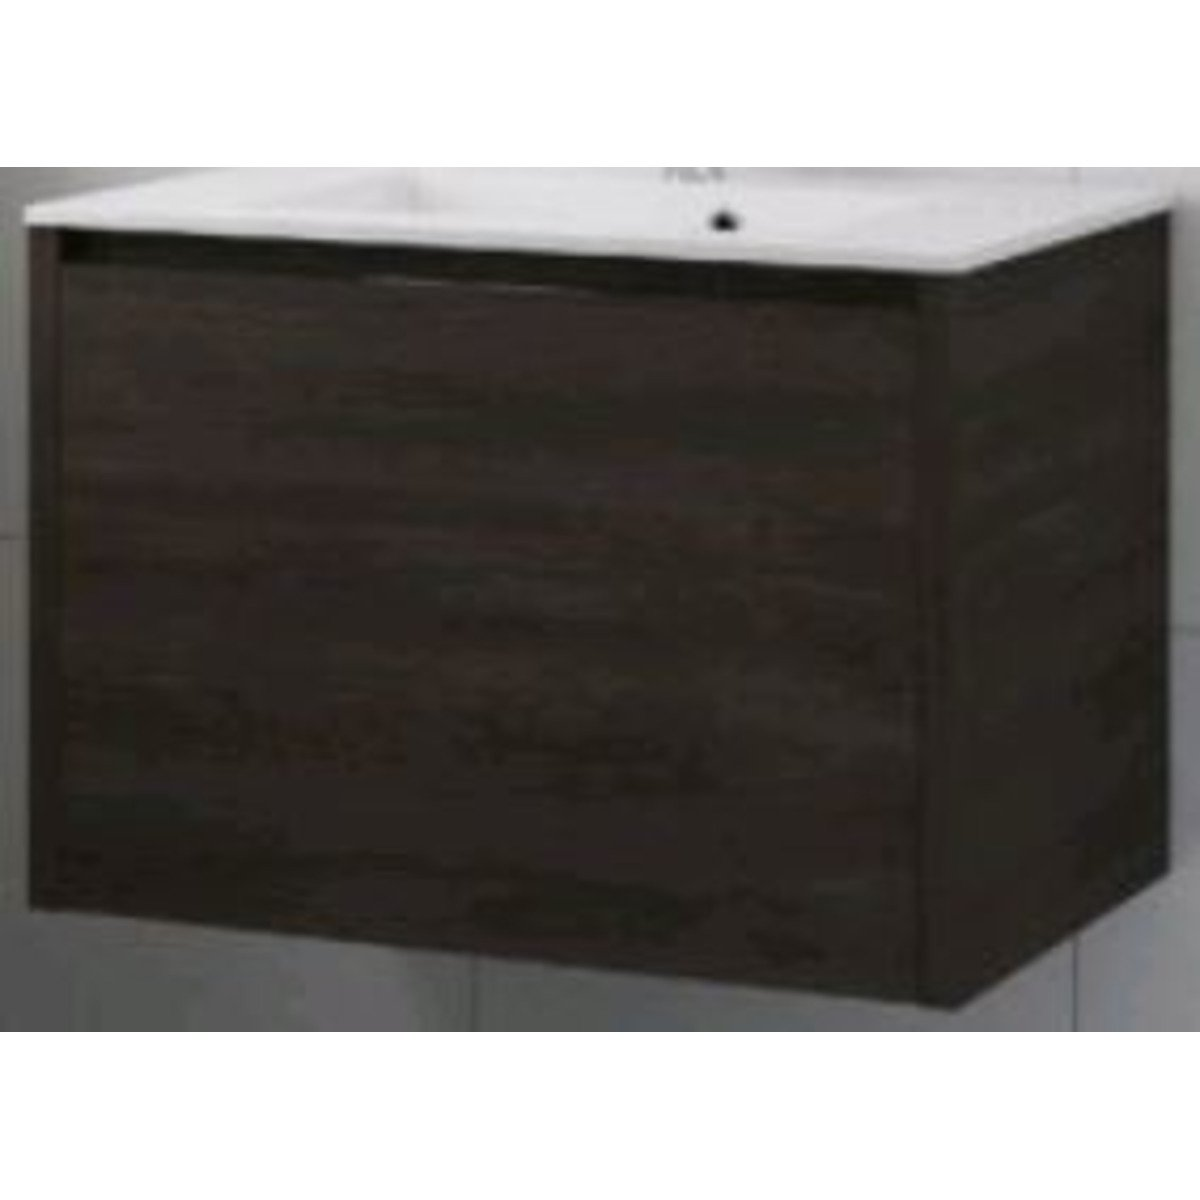 bruynzeel matera meuble sous lavabo 80x50cm 2 tiroirs gladstone oak 232708. Black Bedroom Furniture Sets. Home Design Ideas